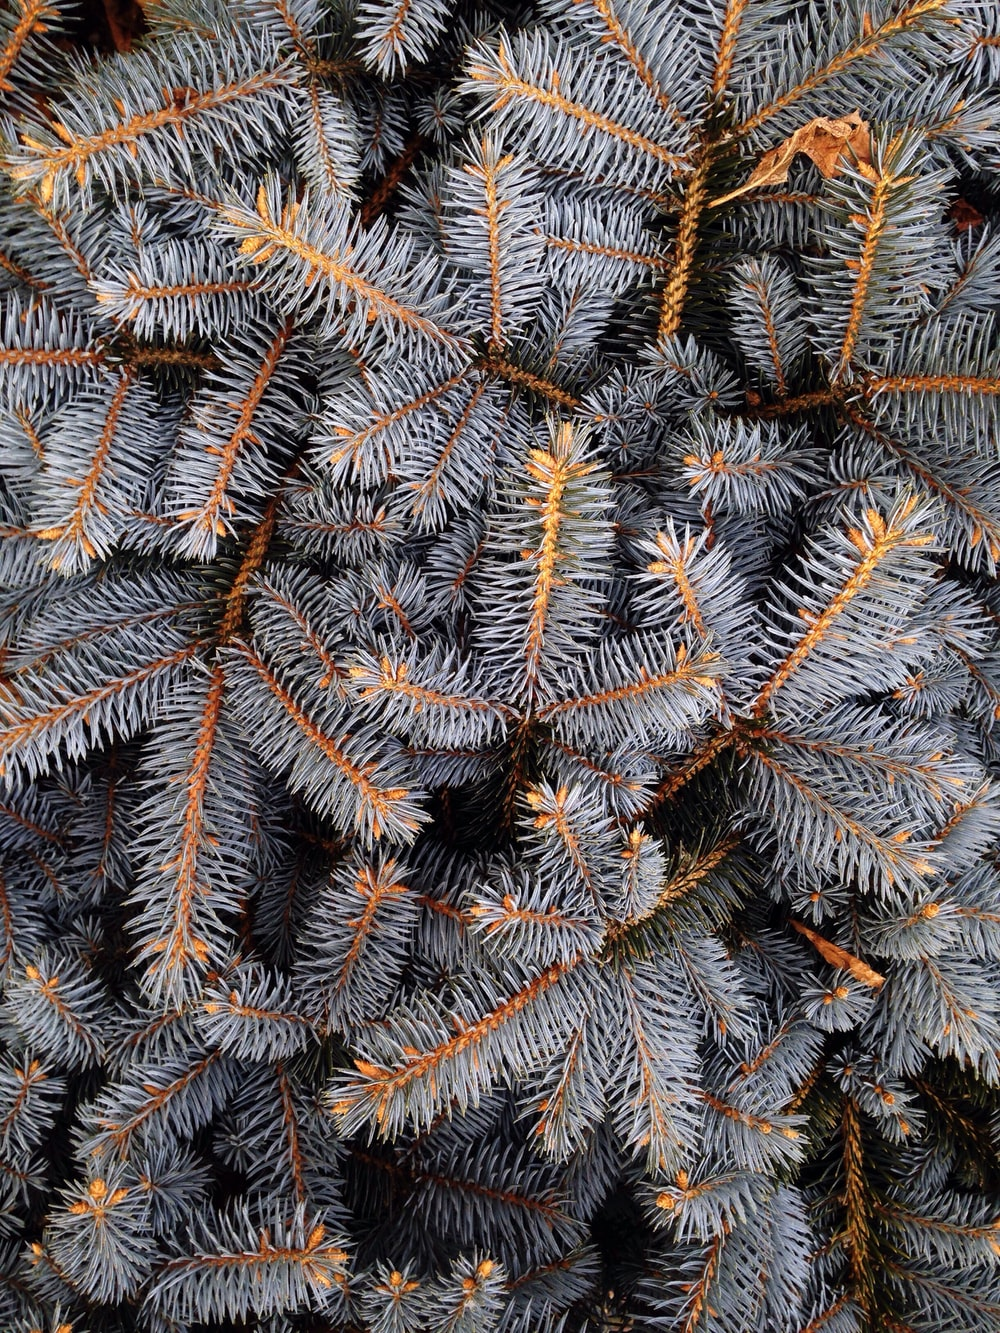 fill the frame photograph of grey pine tree leaves